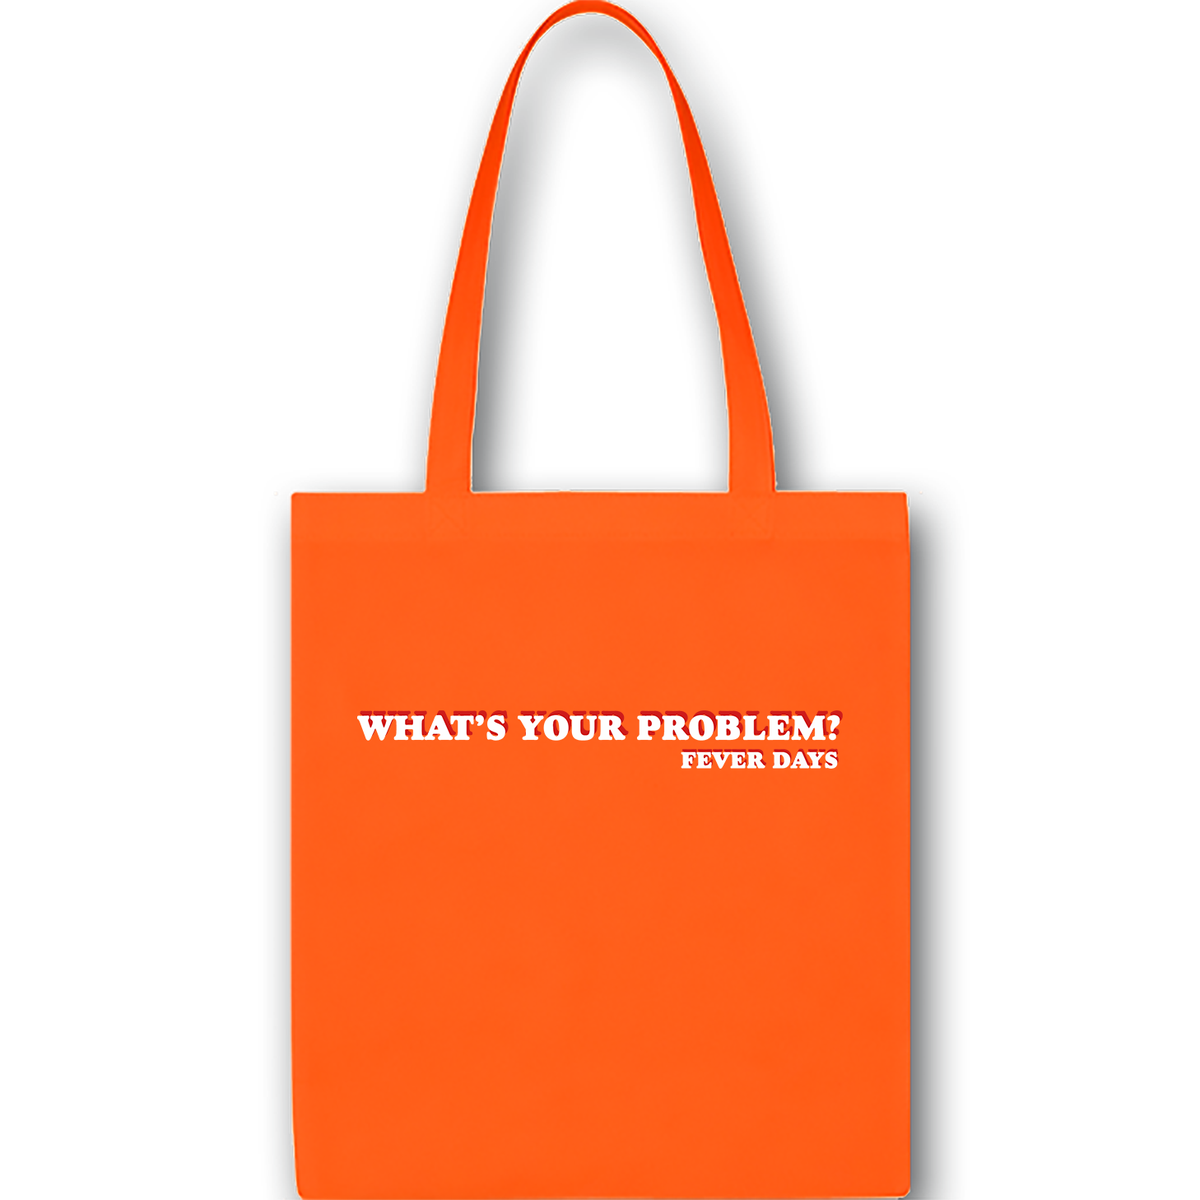 Image of WYP tote